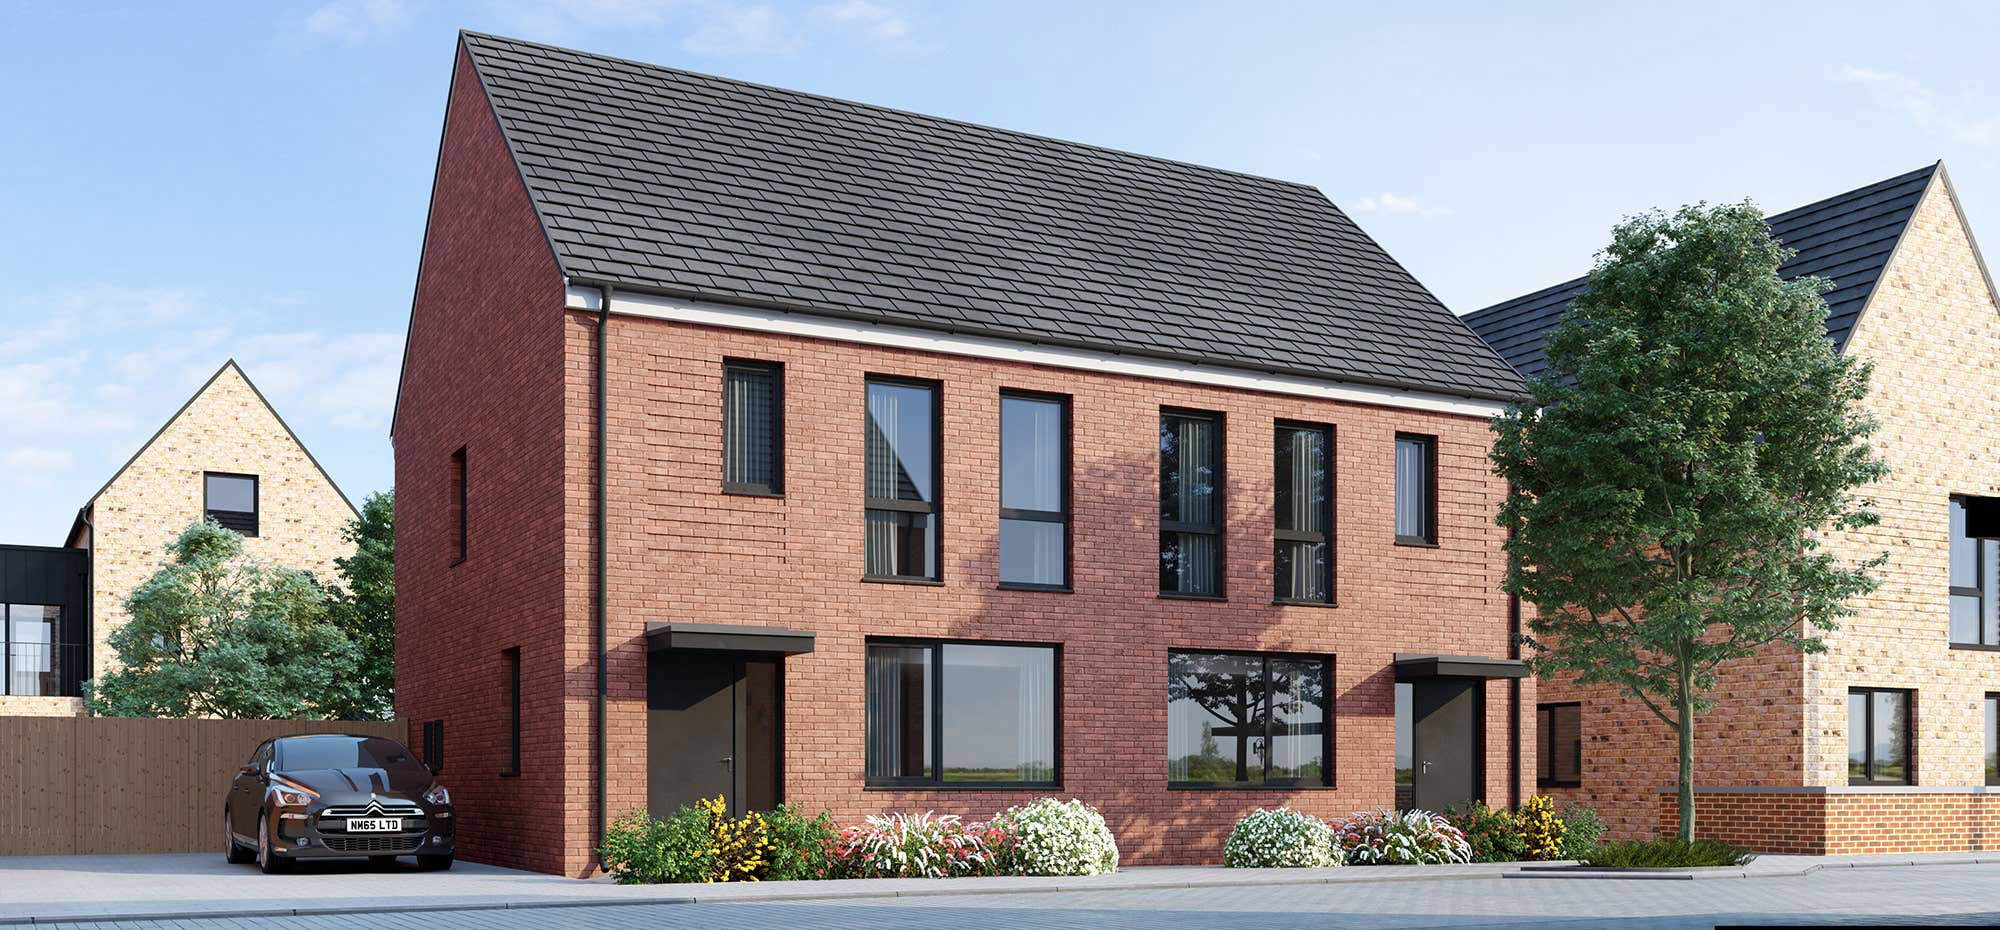 The Clover house from Shape Homes York.